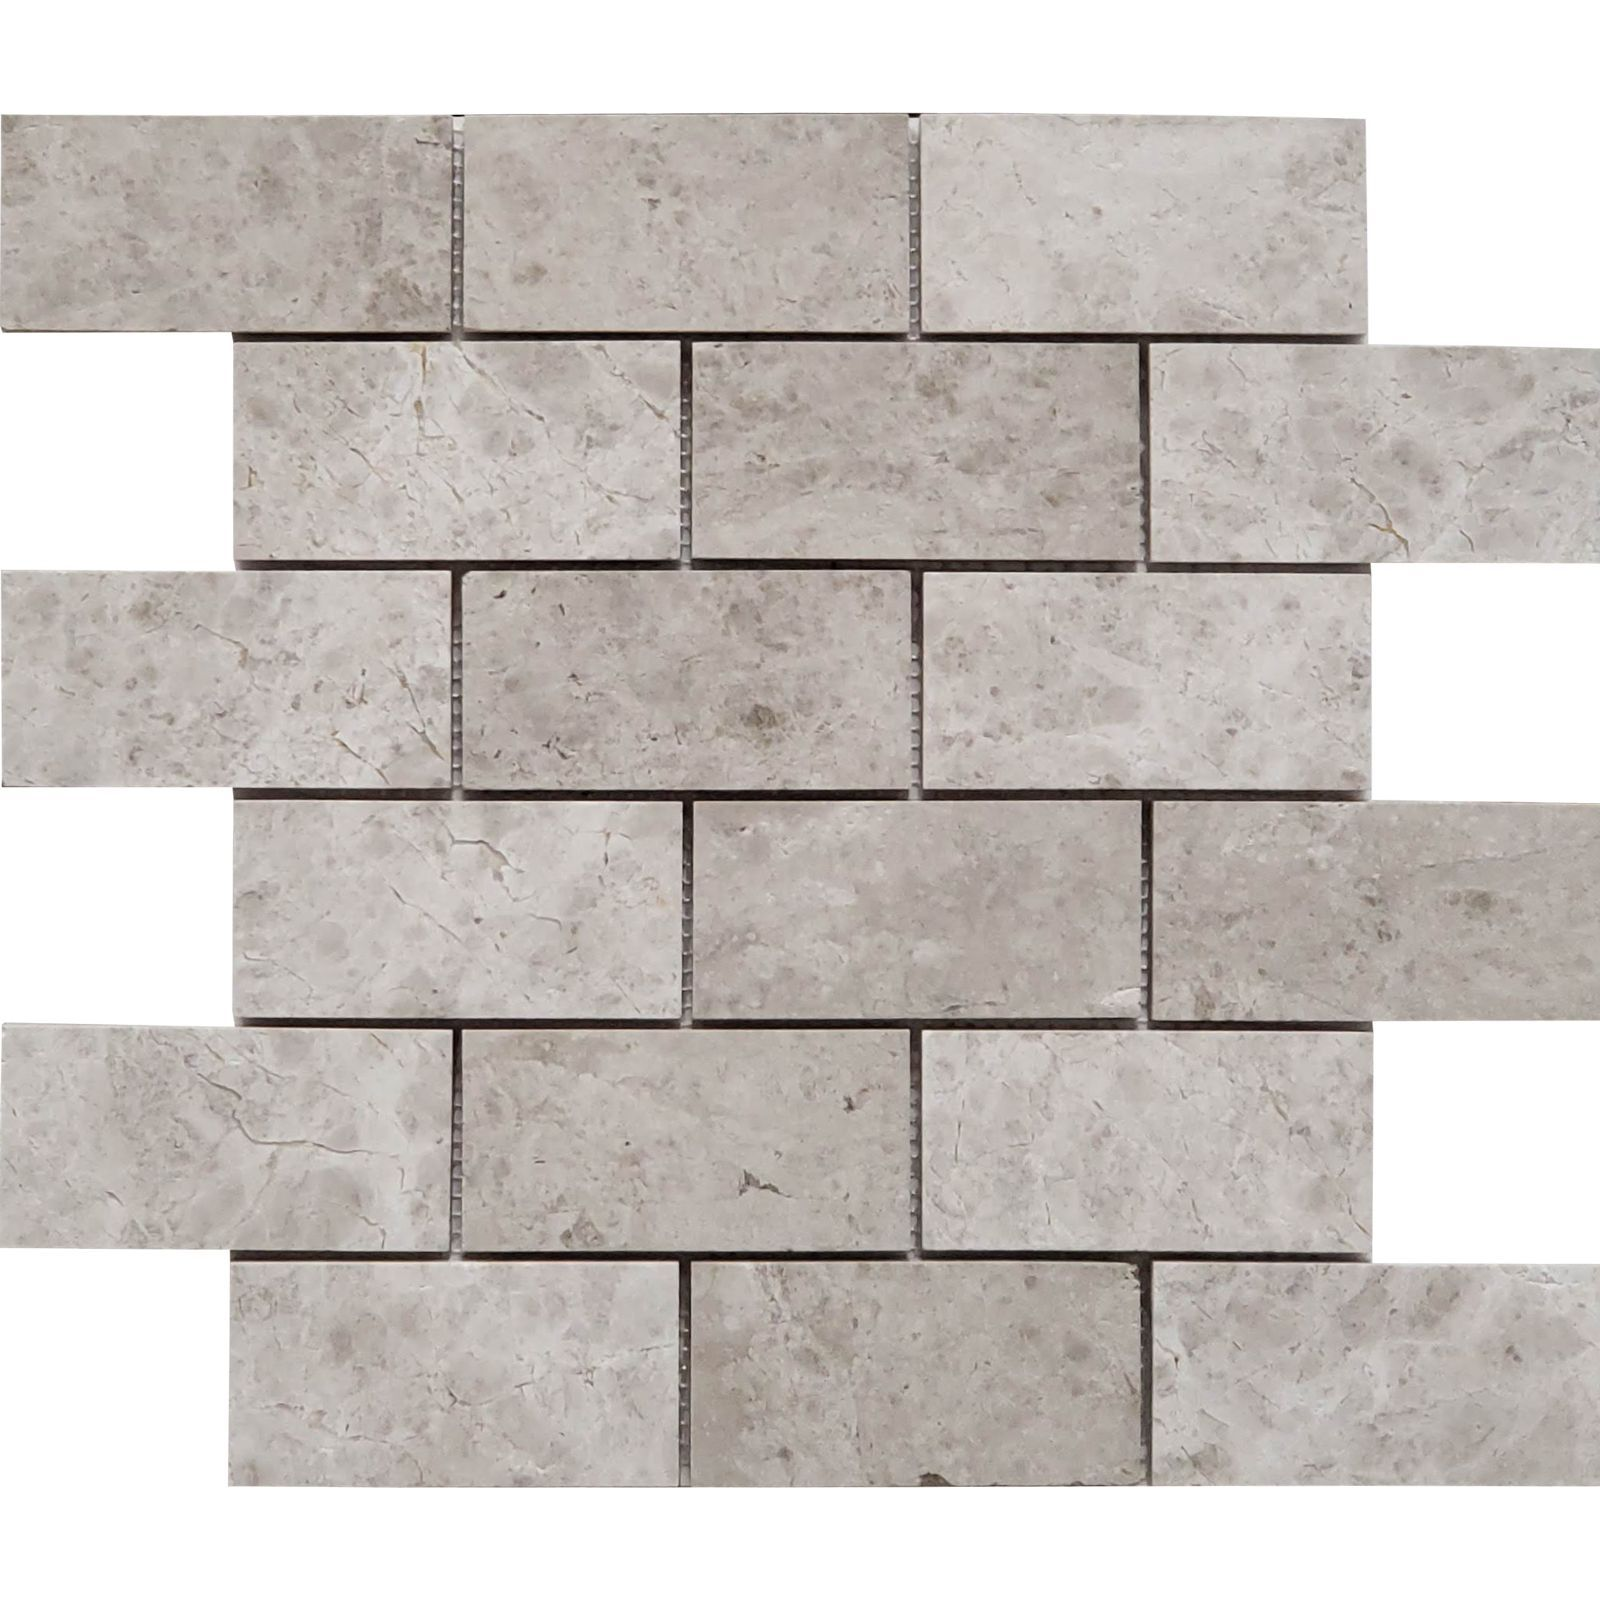 """Tundra Earth Gray Marble Tile Polished-4/""""x4/"""" SAMPLE for 12/""""x12/"""""""